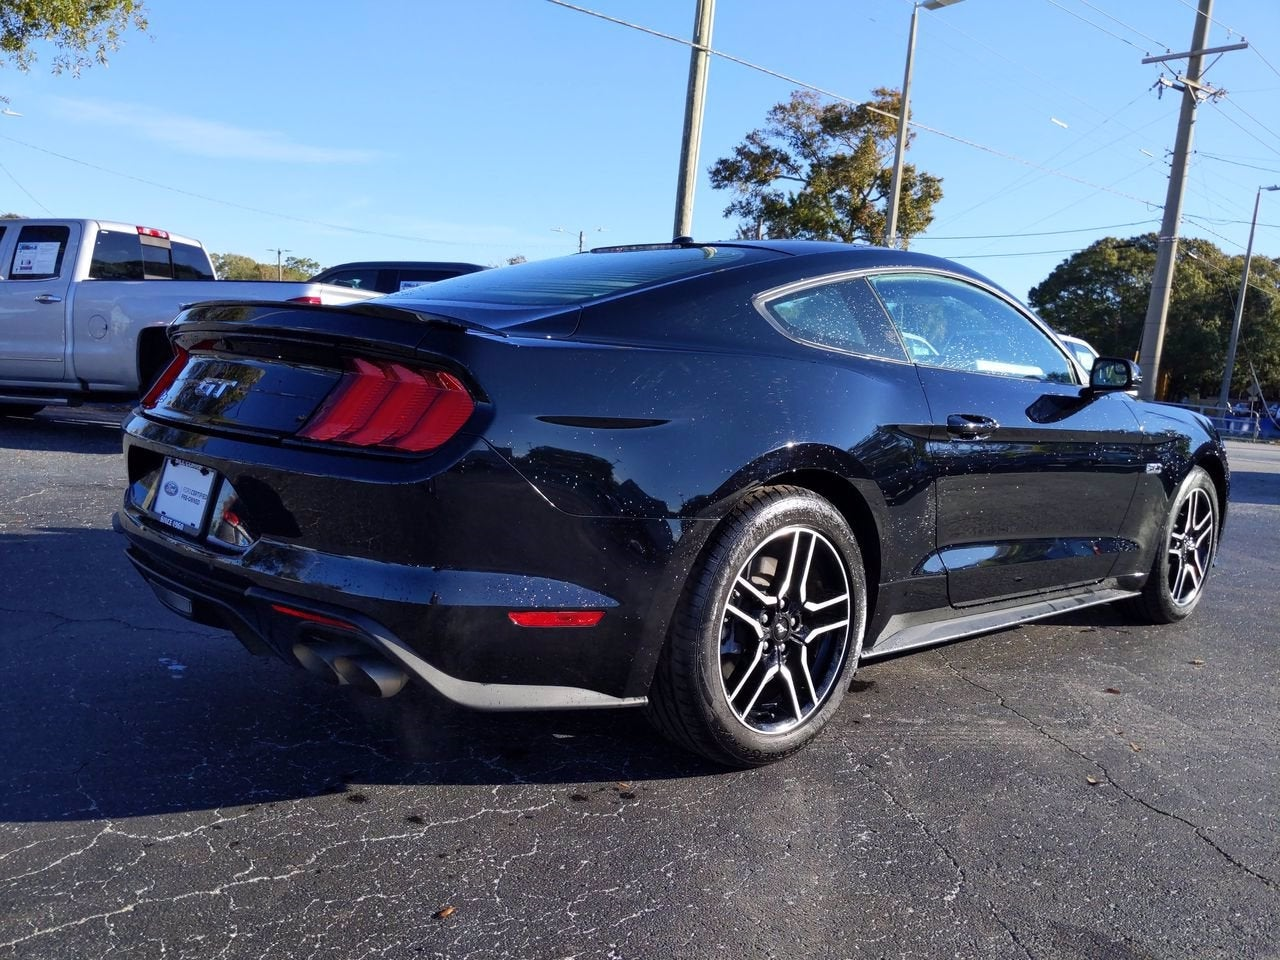 2019 Ford Mustang GT in Tampa FL Tampa Ford Mustang